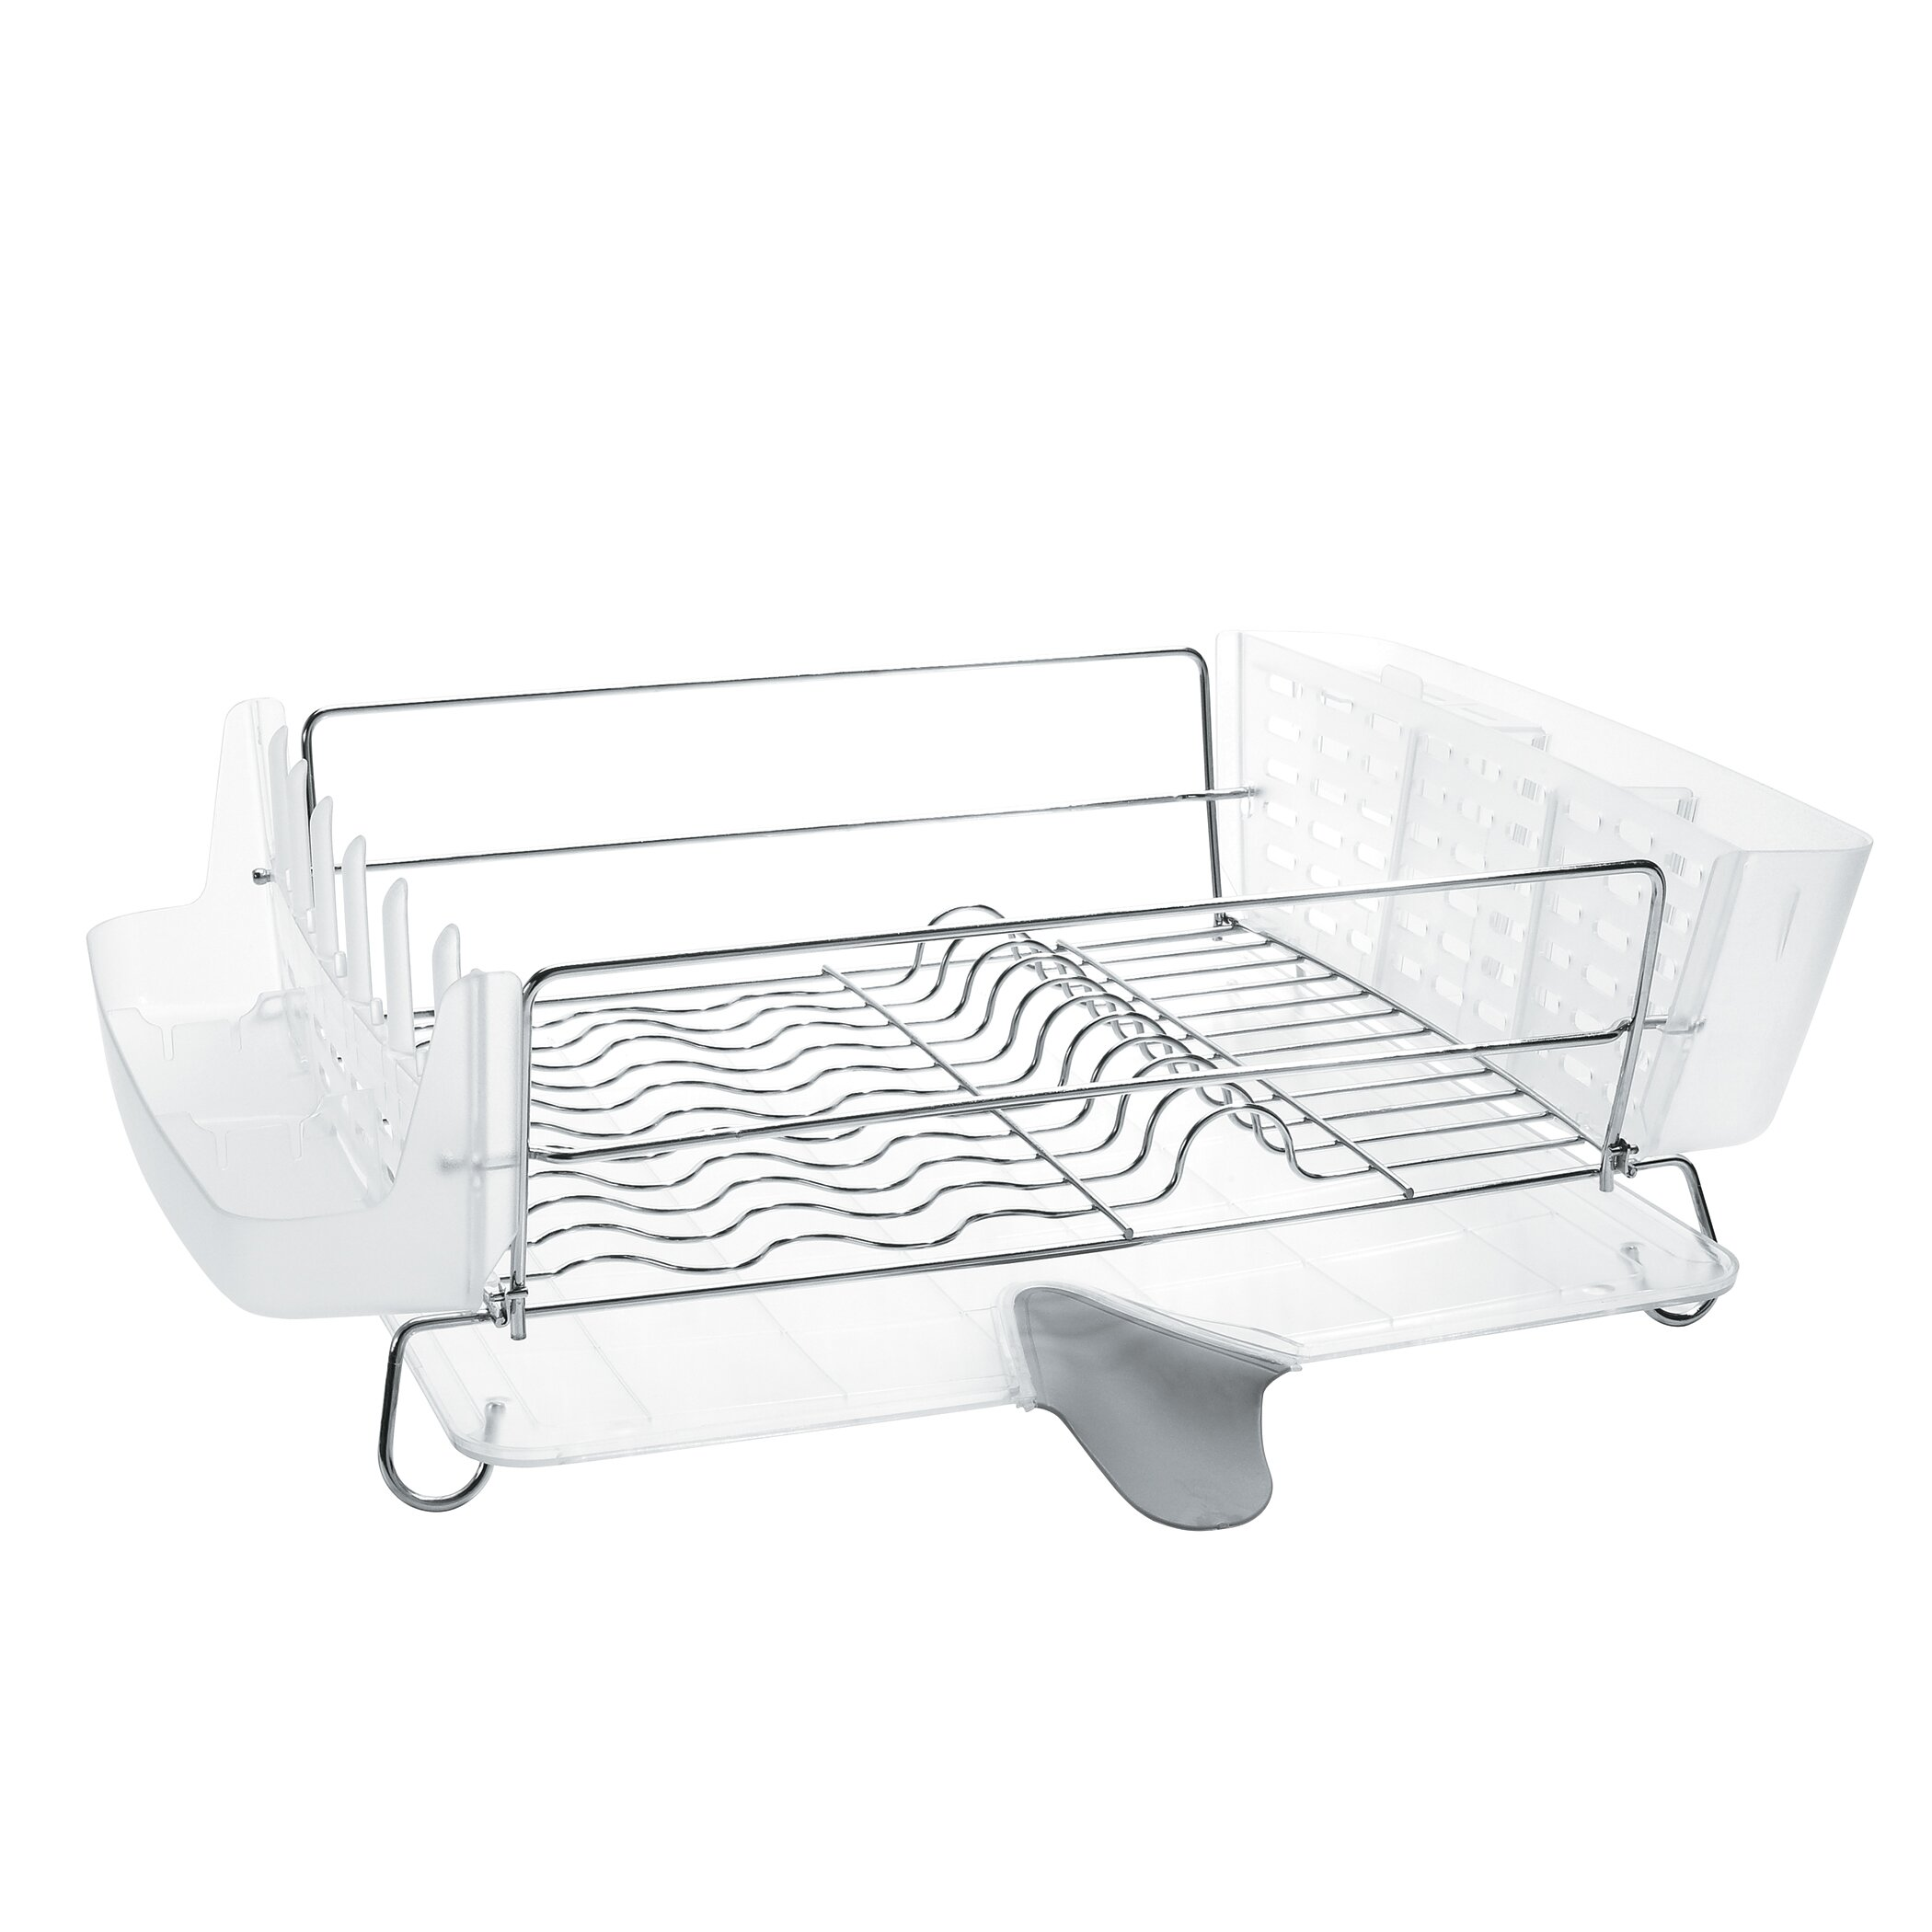 Oxo Good Grips Folding Stainless Steel Dish Rack Amp Reviews